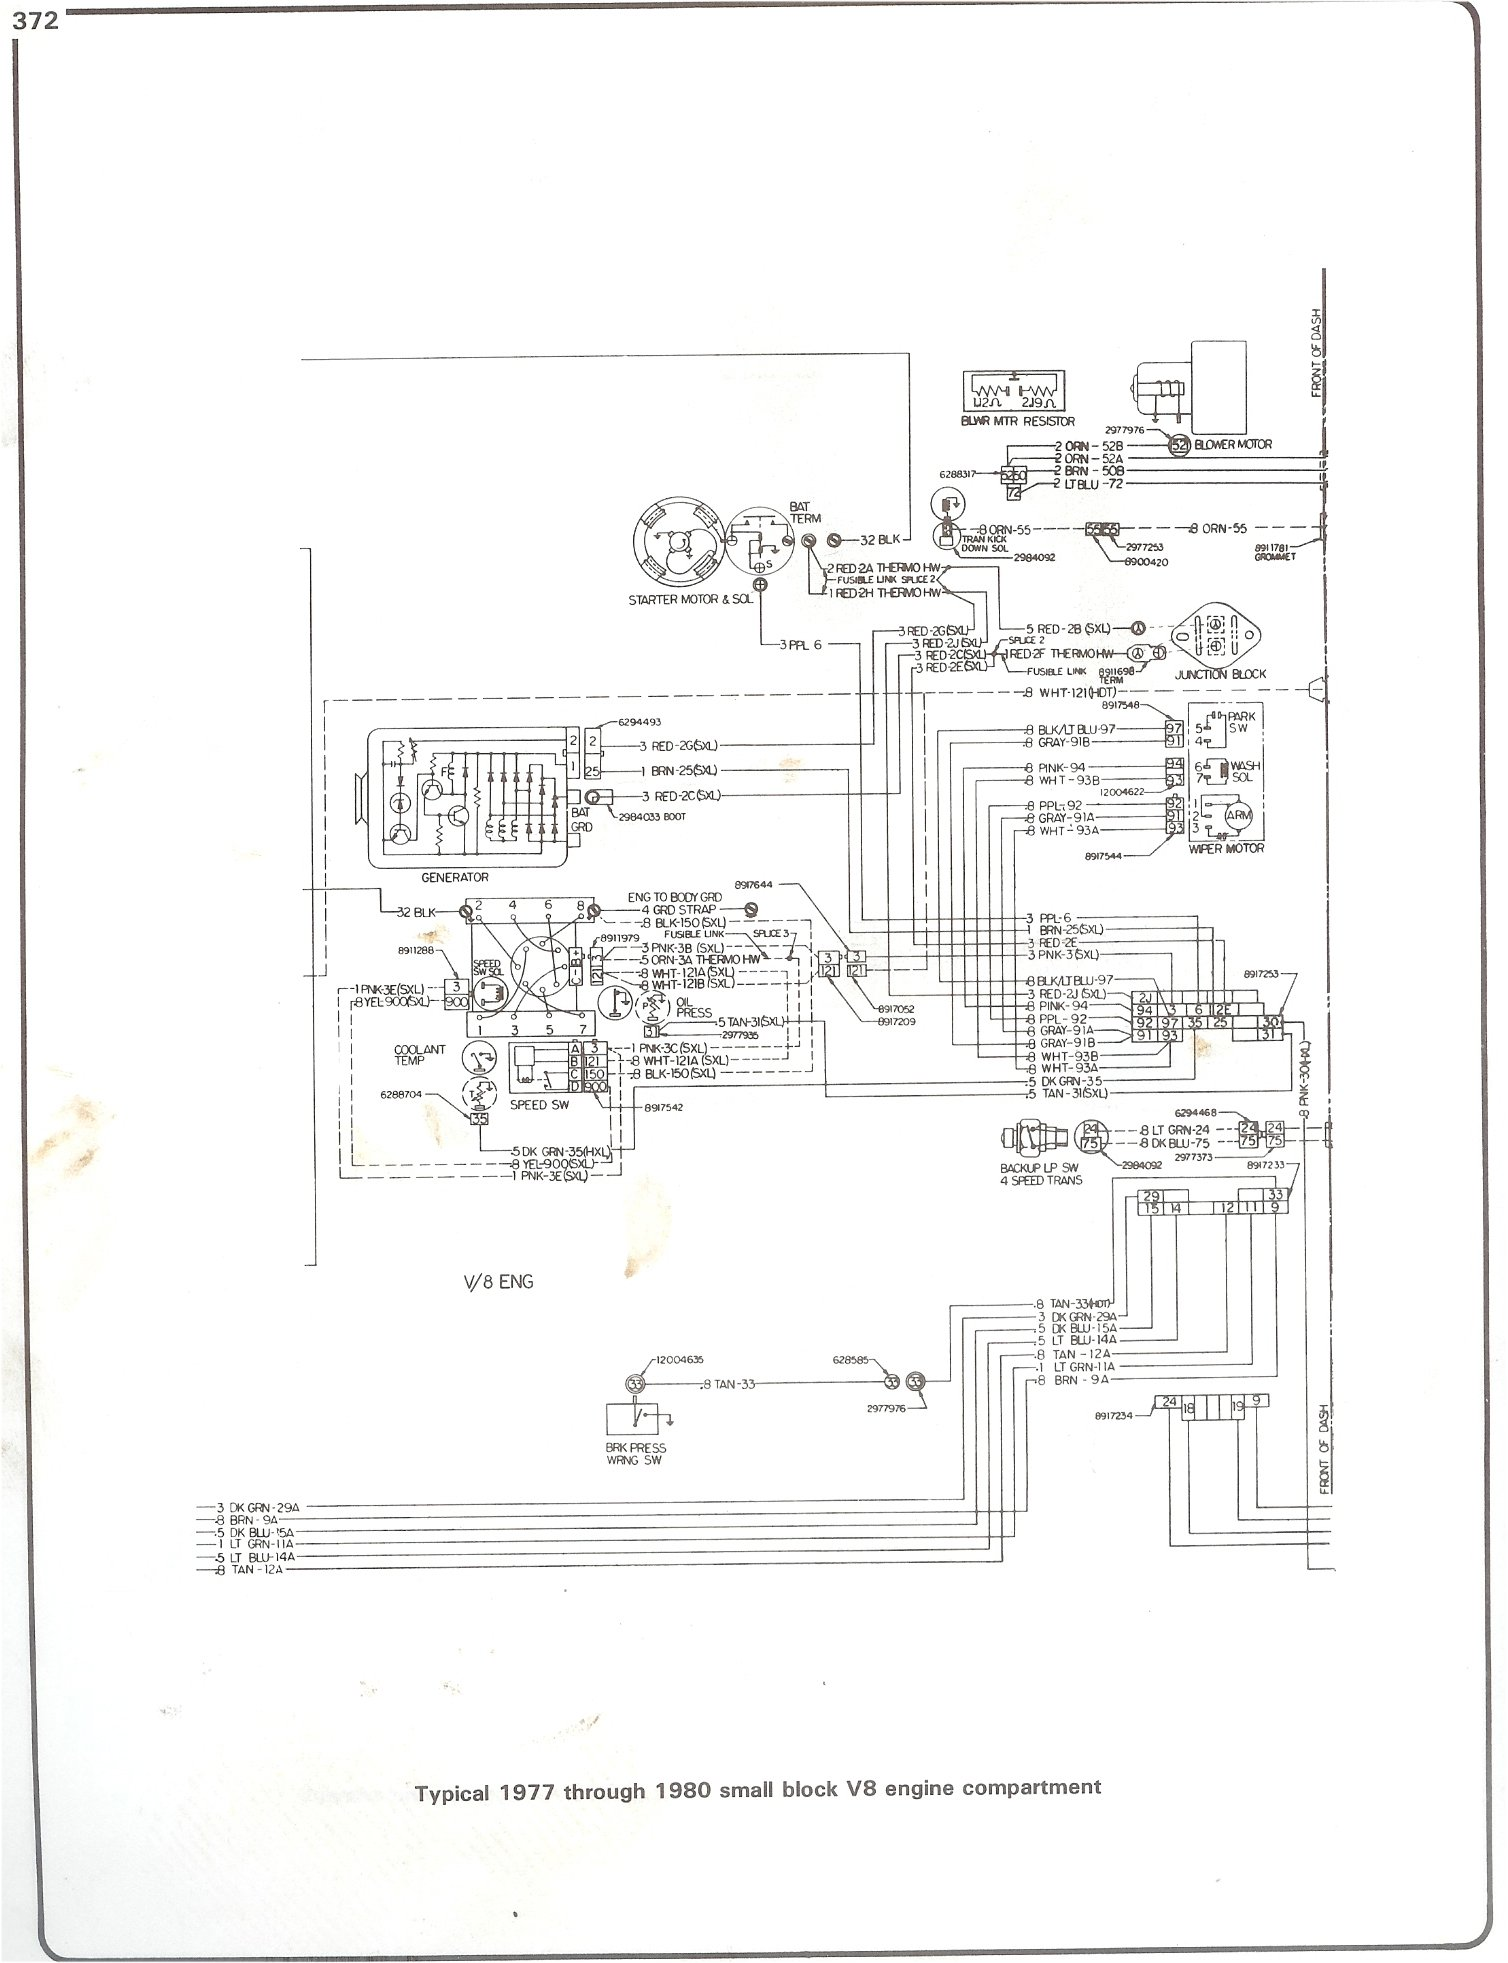 🏆 [DIAGRAM in Pictures Database] Turn Signal Wiring Diagram For 77 Chevy  Truck Just Download or Read Chevy Truck - DOUME.FORUM.ONYXUM.COMComplete Diagram Picture Database - Onyxum.com